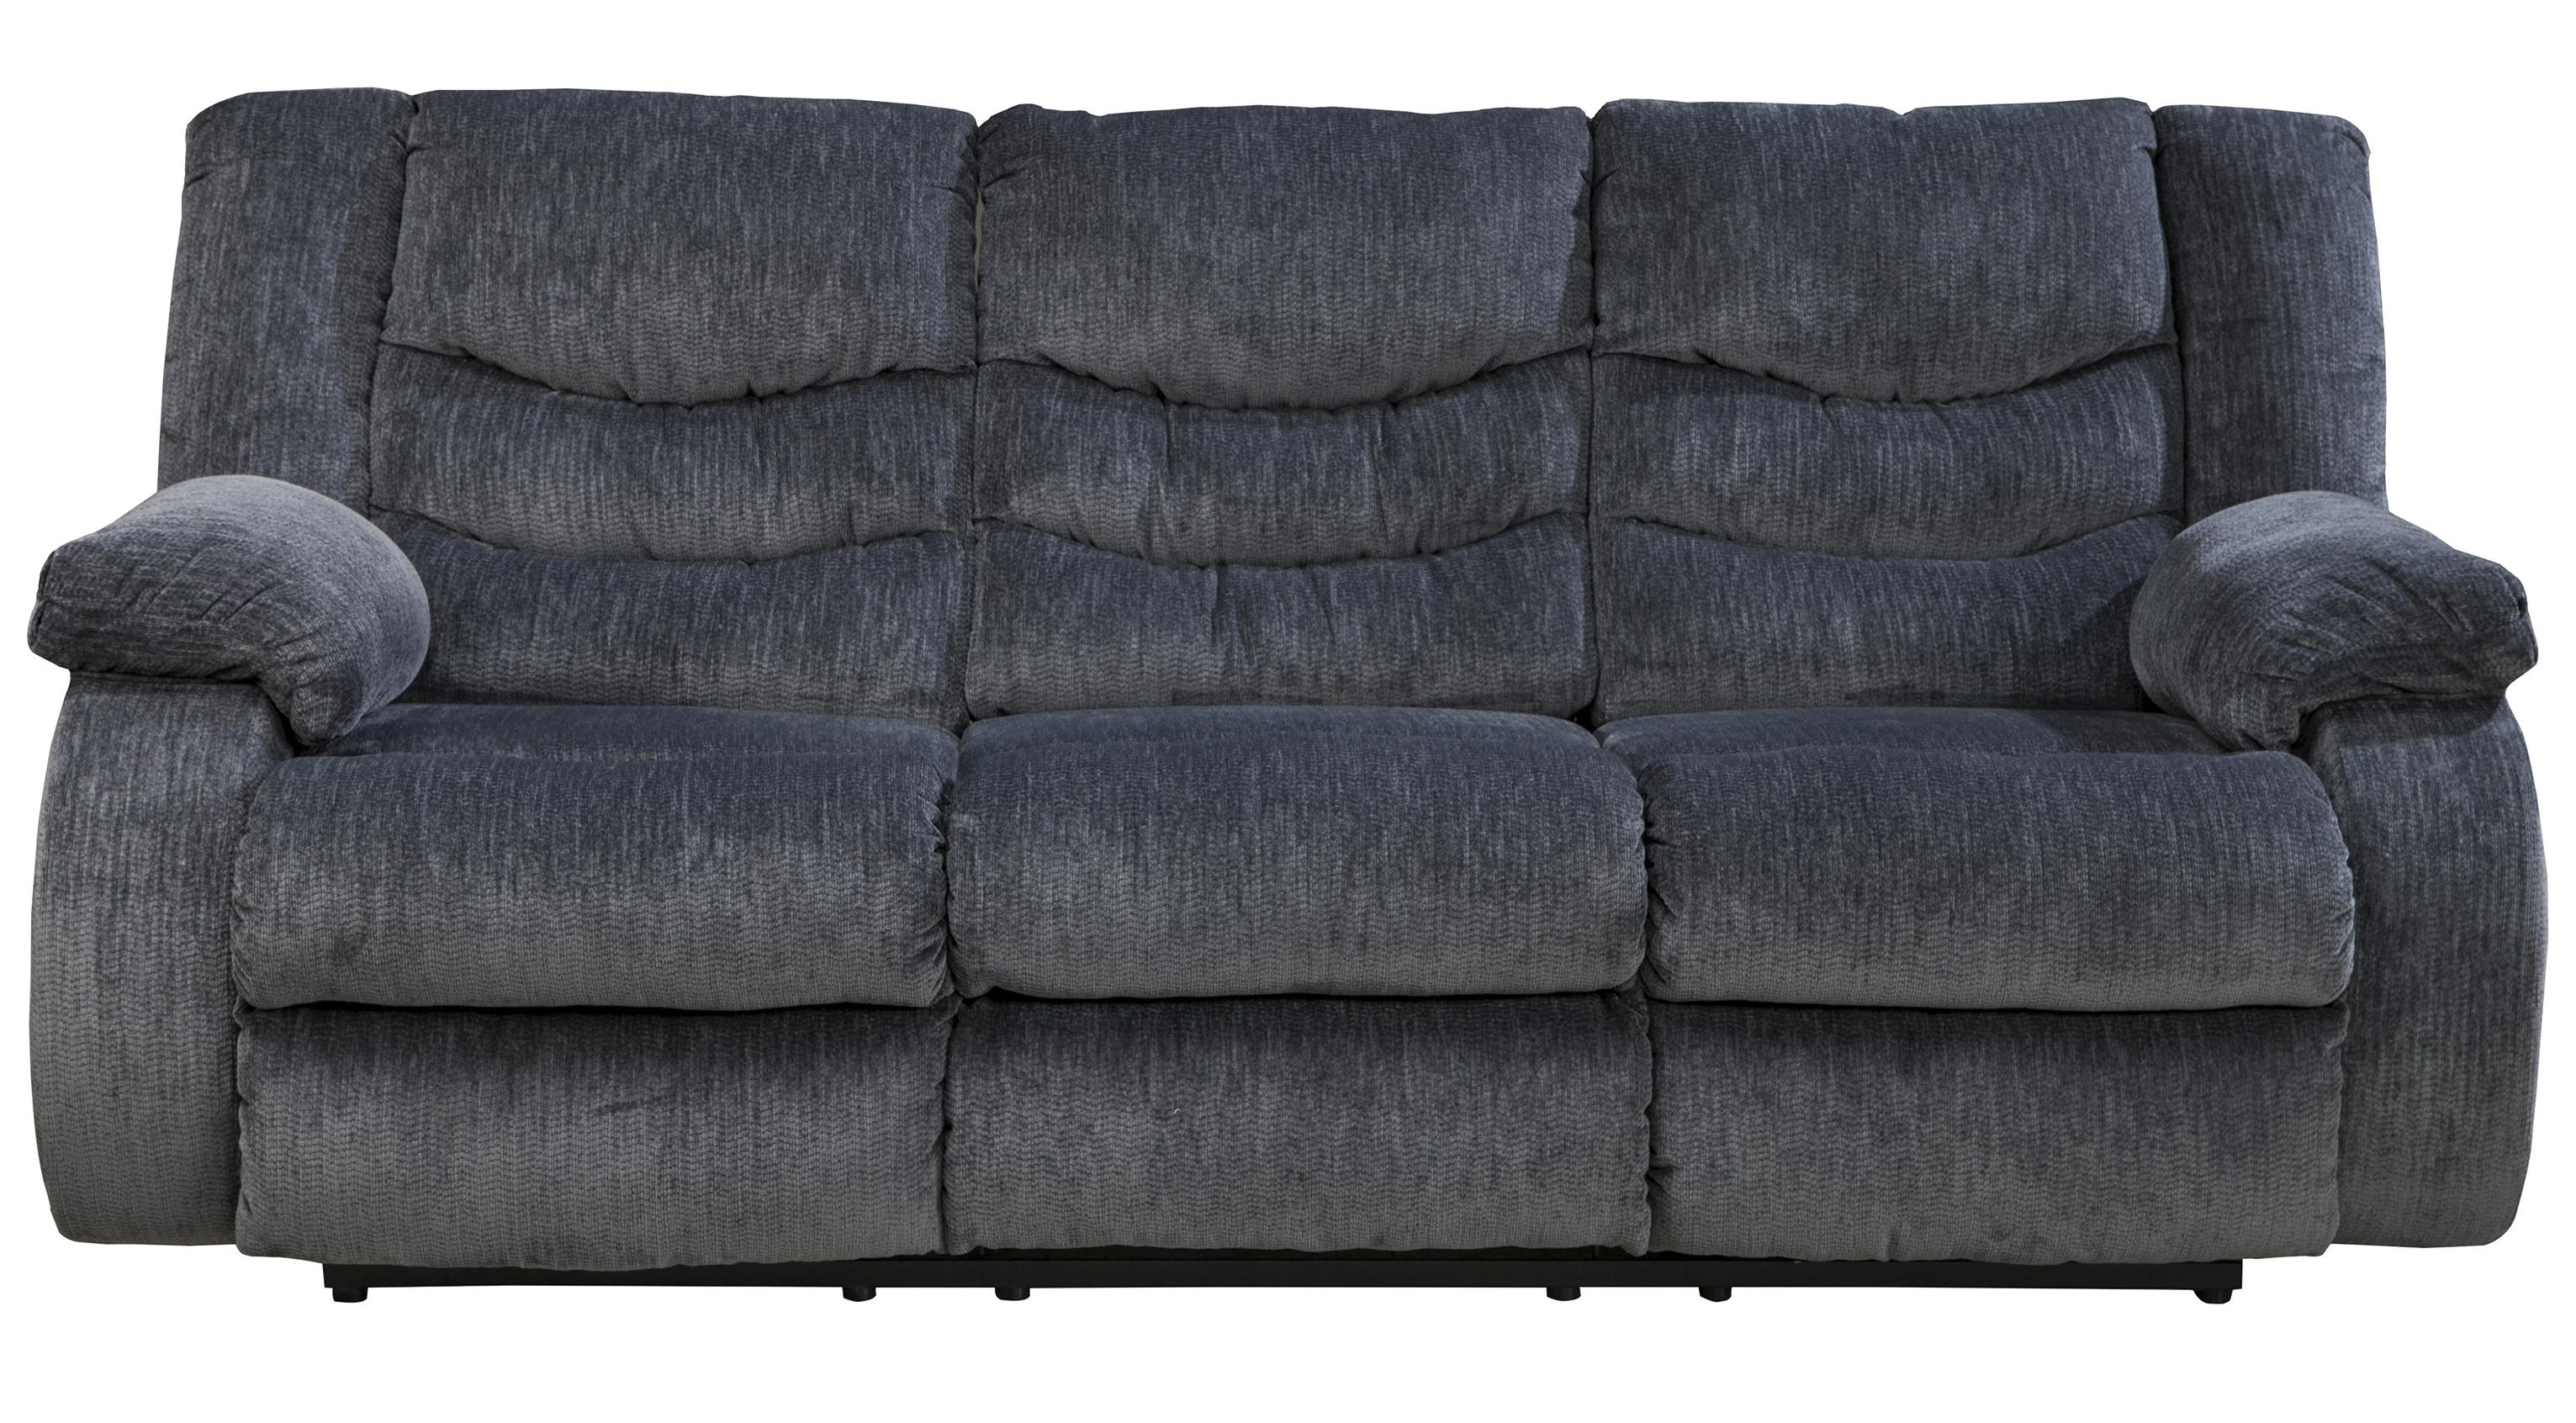 Signature Design by Ashley Garek - Blue Reclining Sofa - Item Number: 9200188